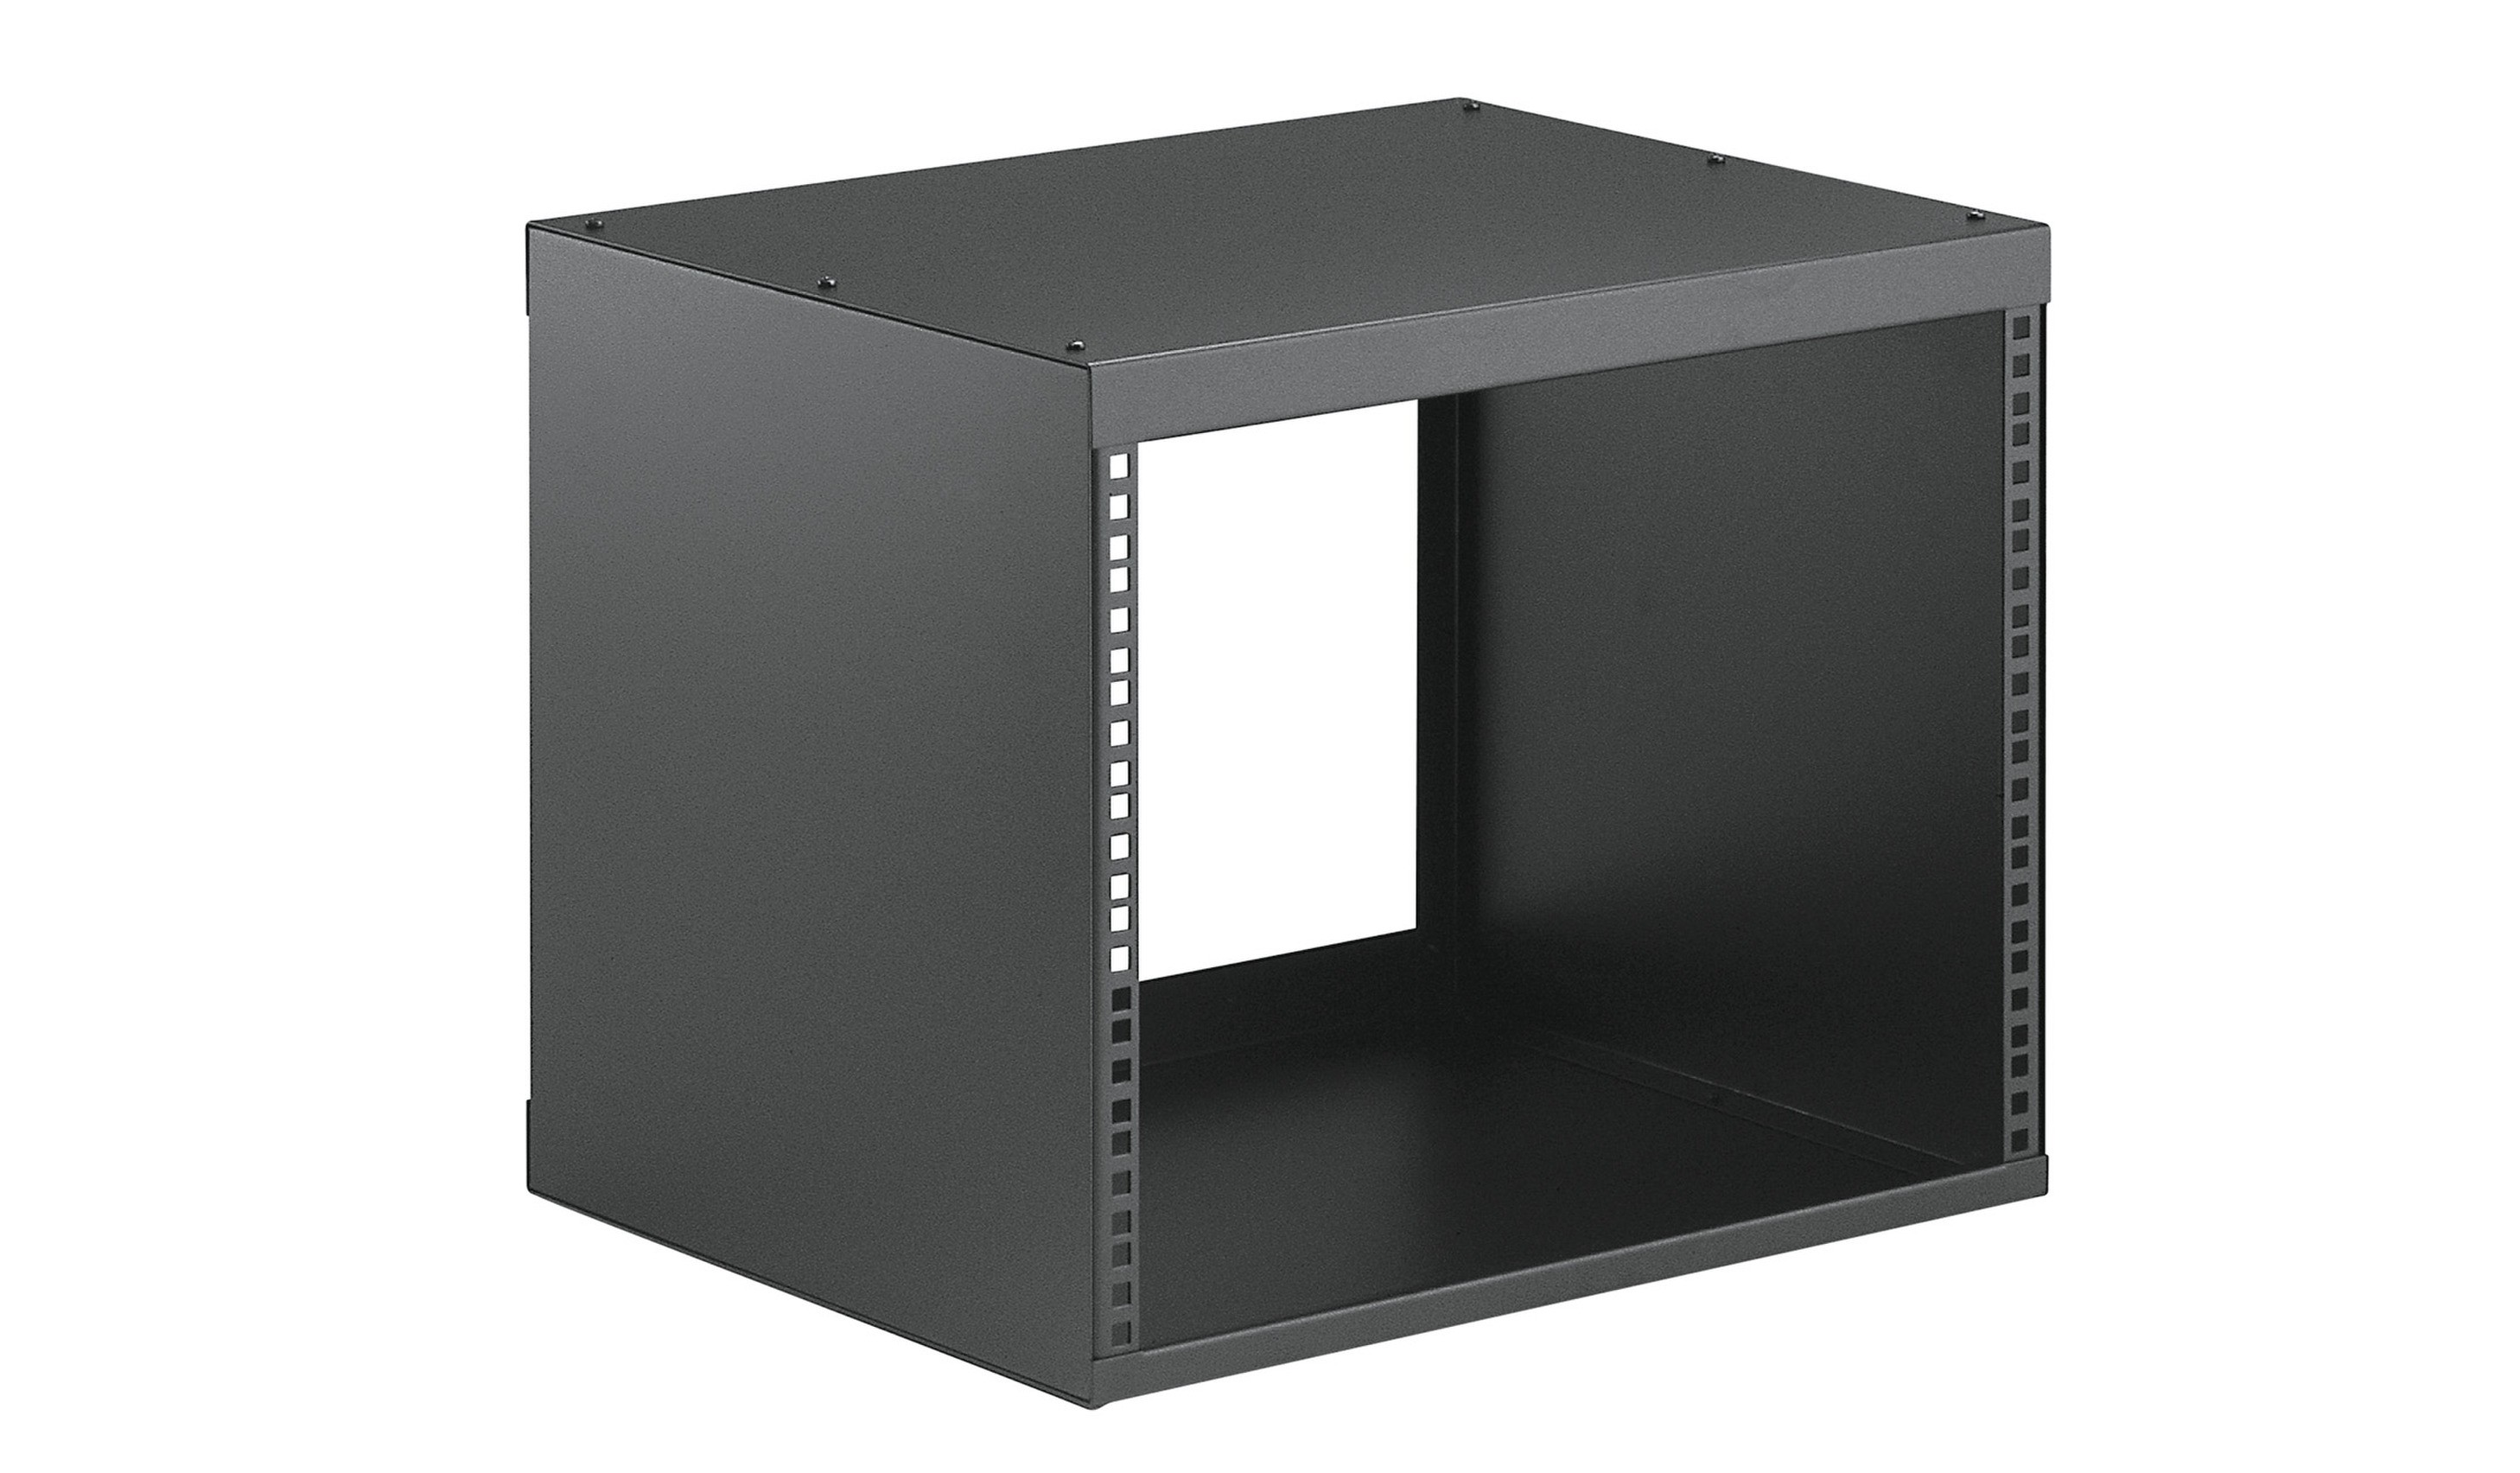 K&M 48240 | RACK black | 8 spaces